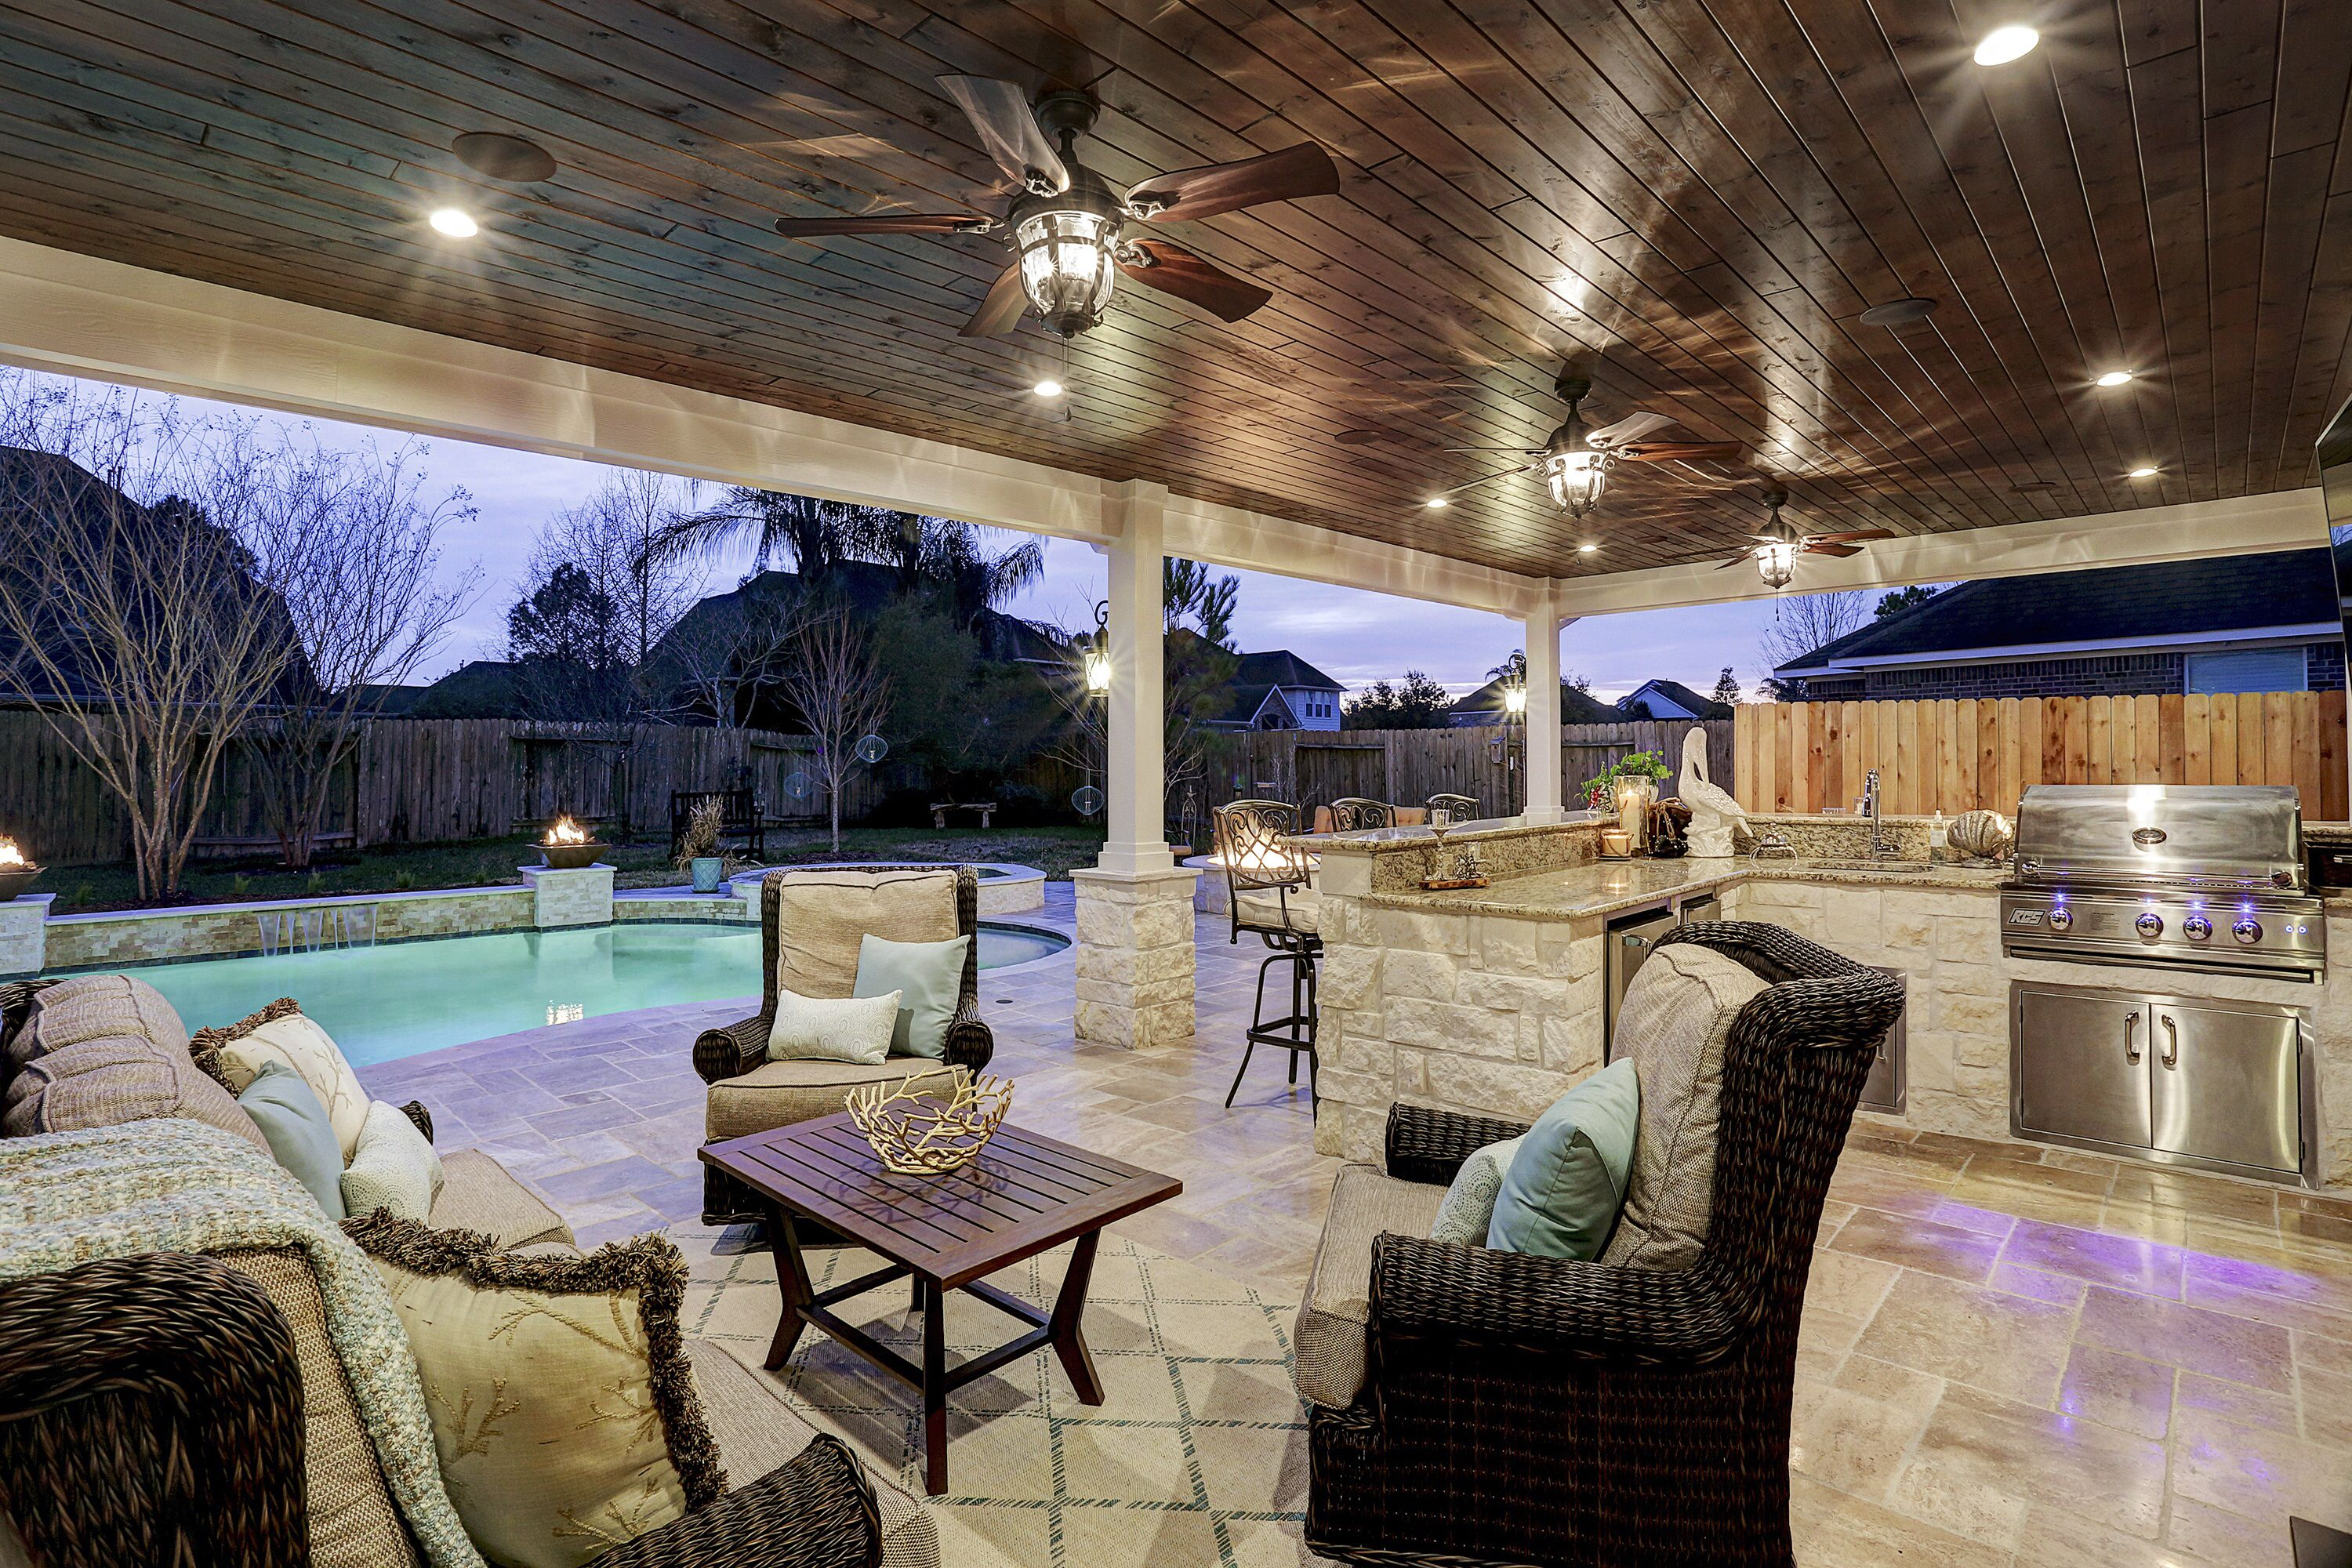 Outdoor Living Area With Tongue And Groove Ceiling And Outdoor Kitchen Outdoor Remodel Outdoor Living Space Design Outdoor Living Areas